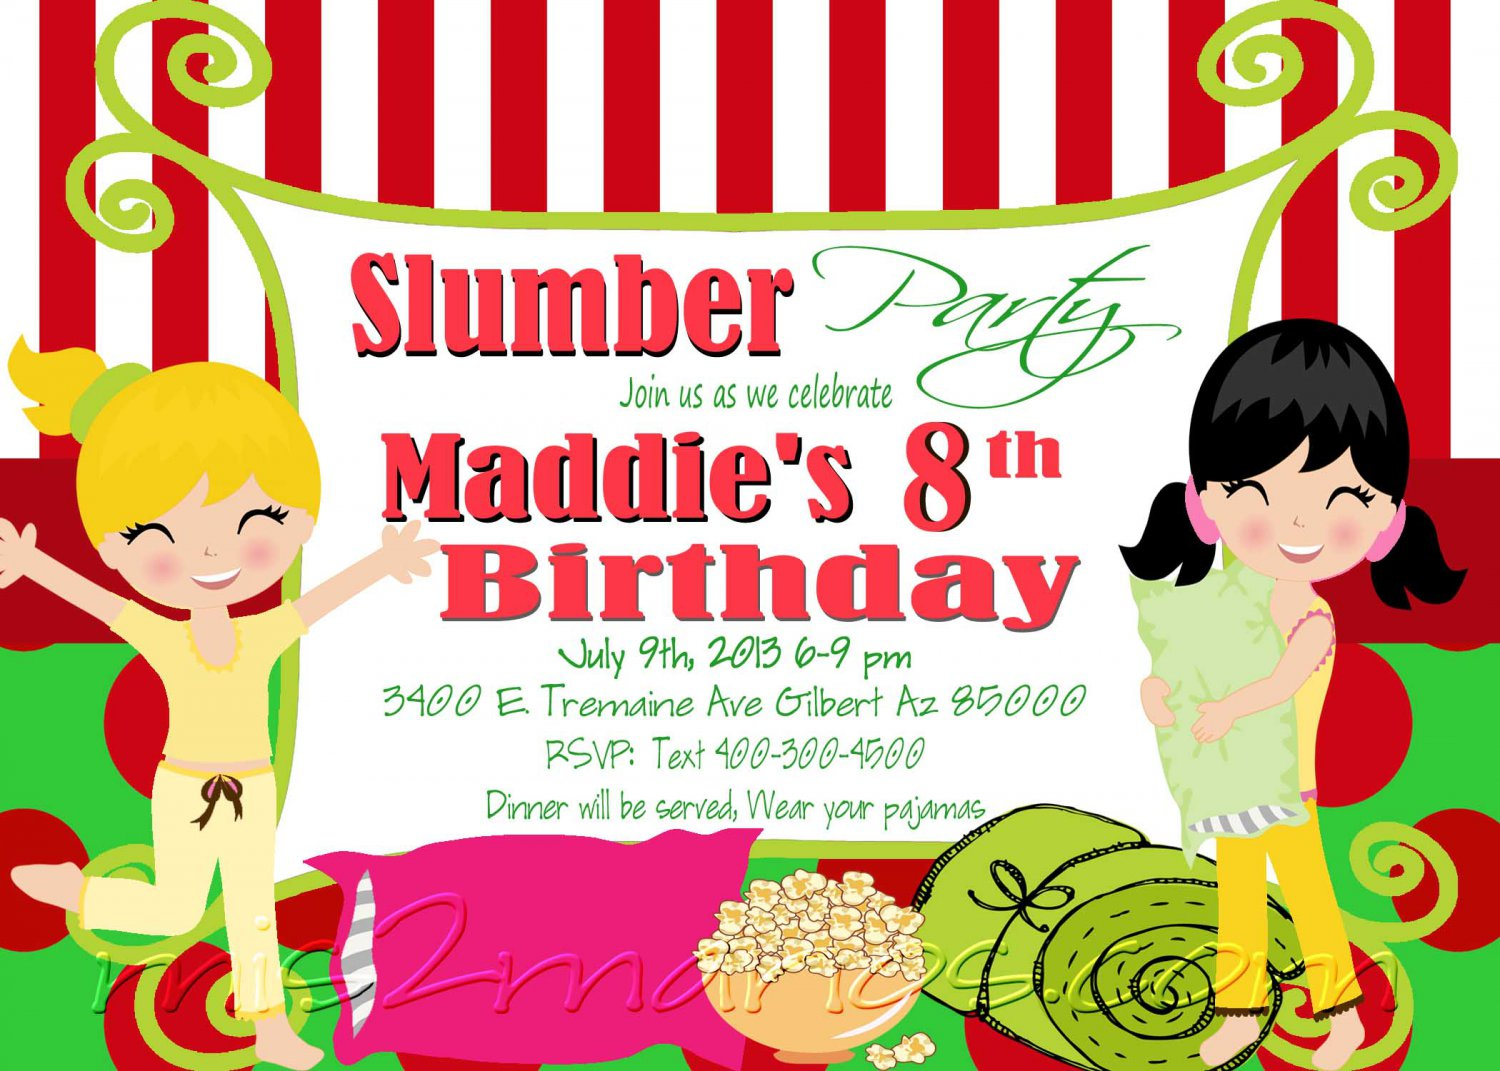 Slumber Party Invitation Sleepover Invite Birthday Girls Printable DIY Christmas